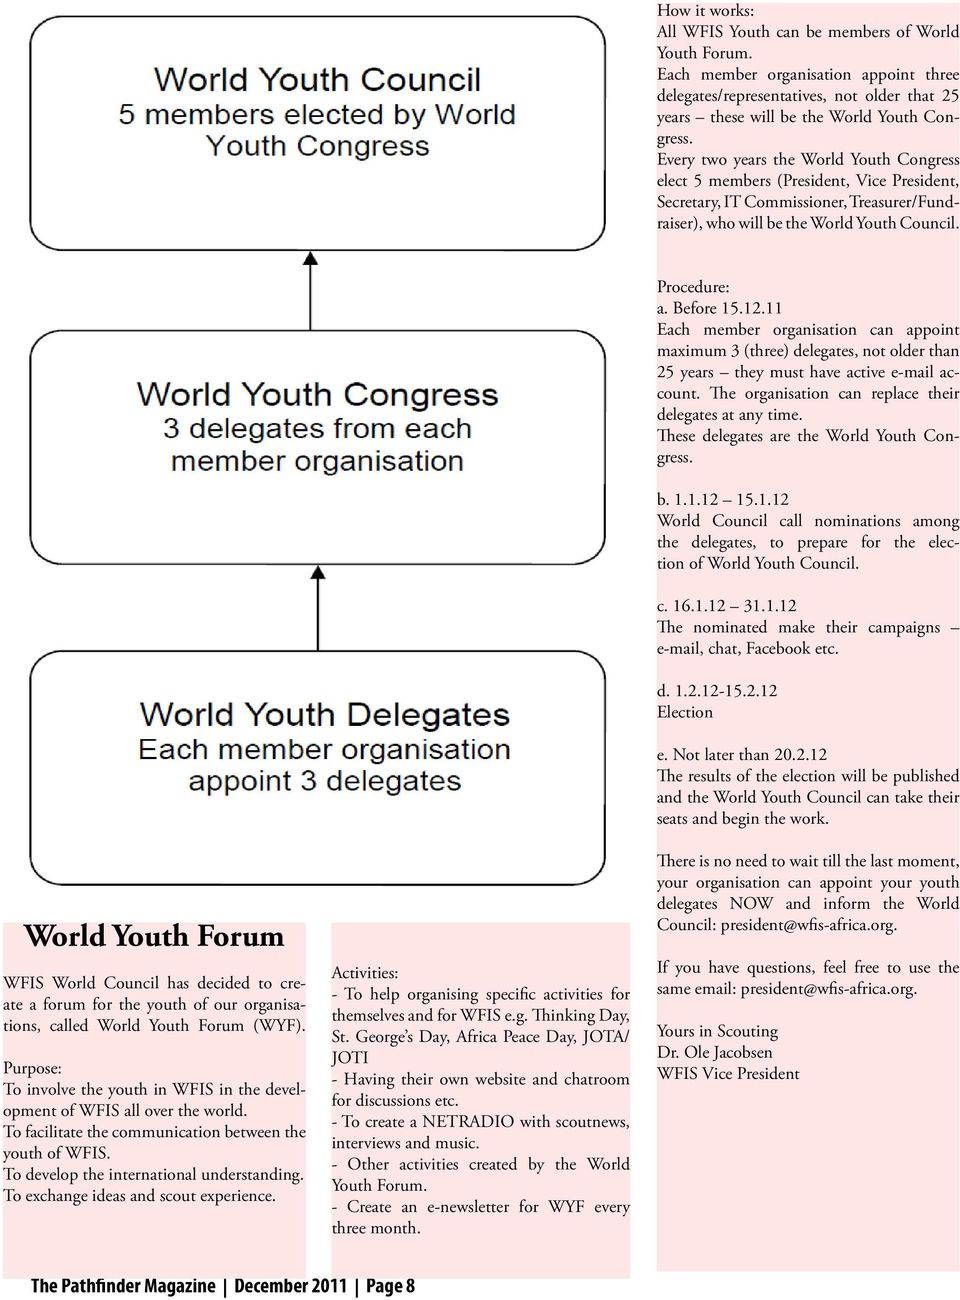 World Youth Forum WFIS World Council has decided to create a forum for the youth of our organisations, called World Youth Forum (WYF).